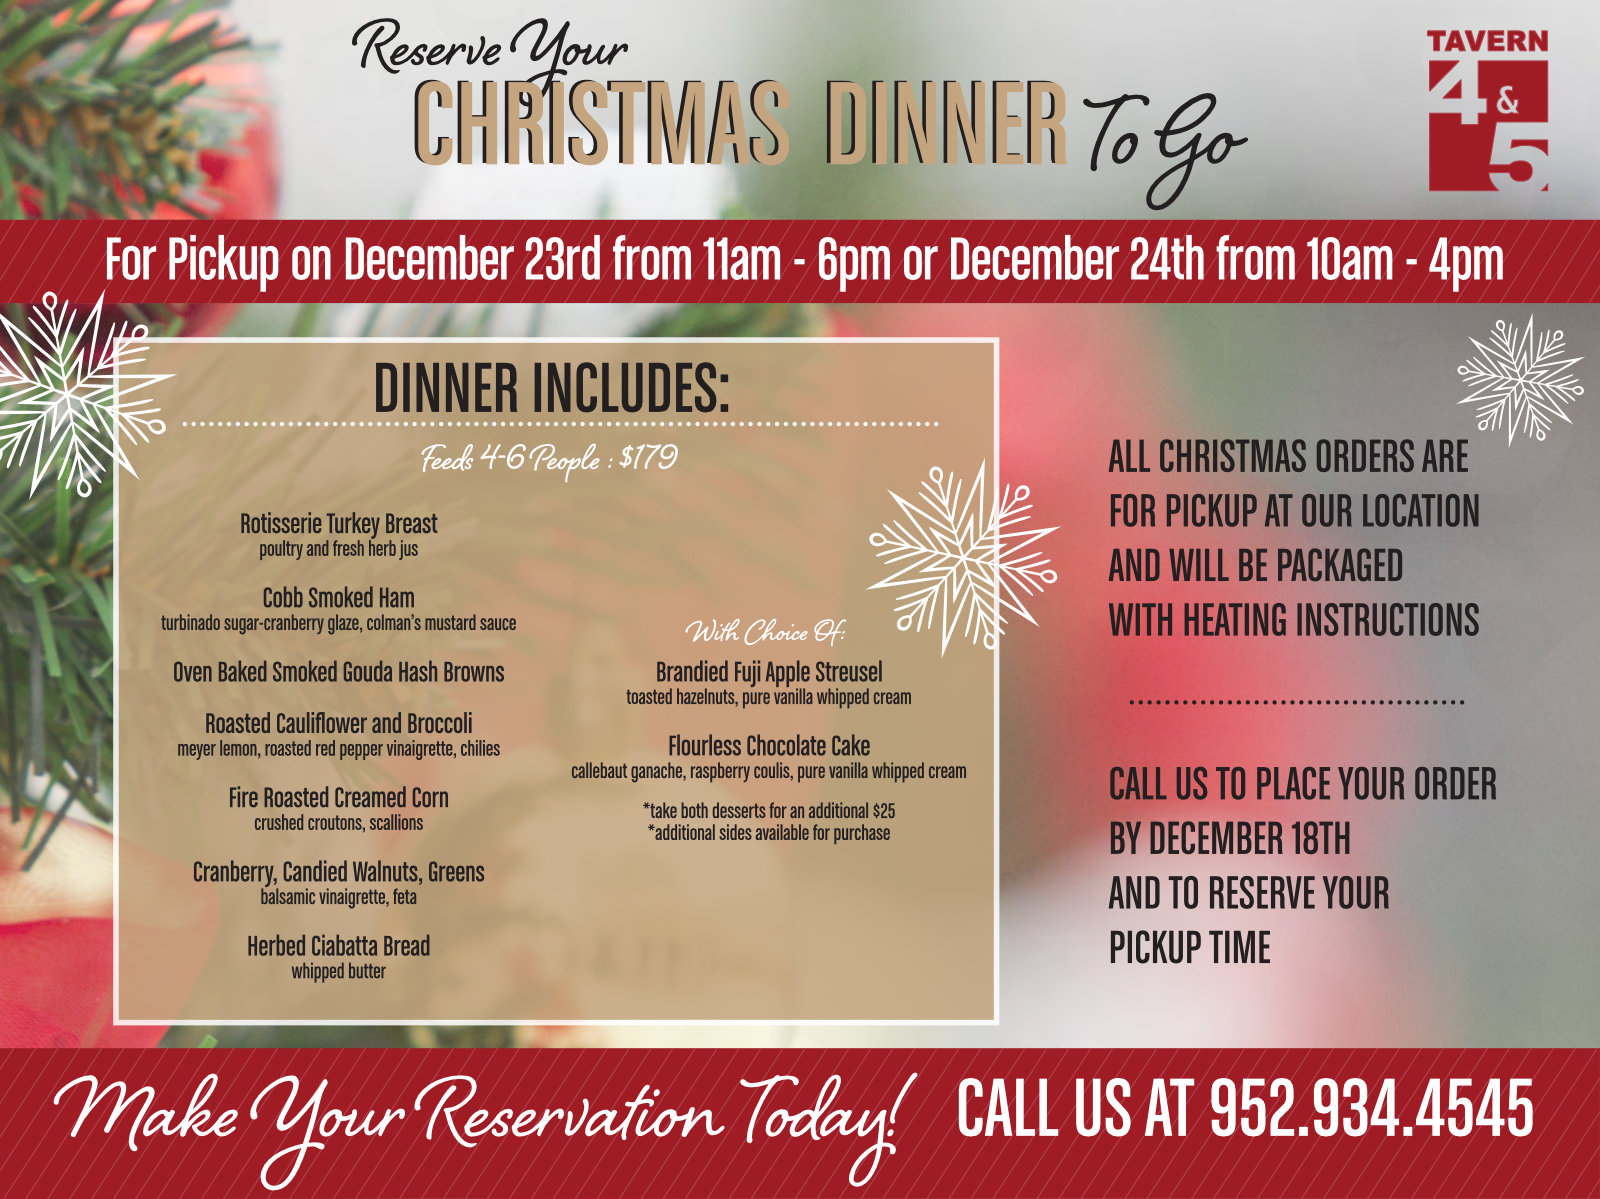 Reserve your Christmas dinner to go! Call 952.934.4545